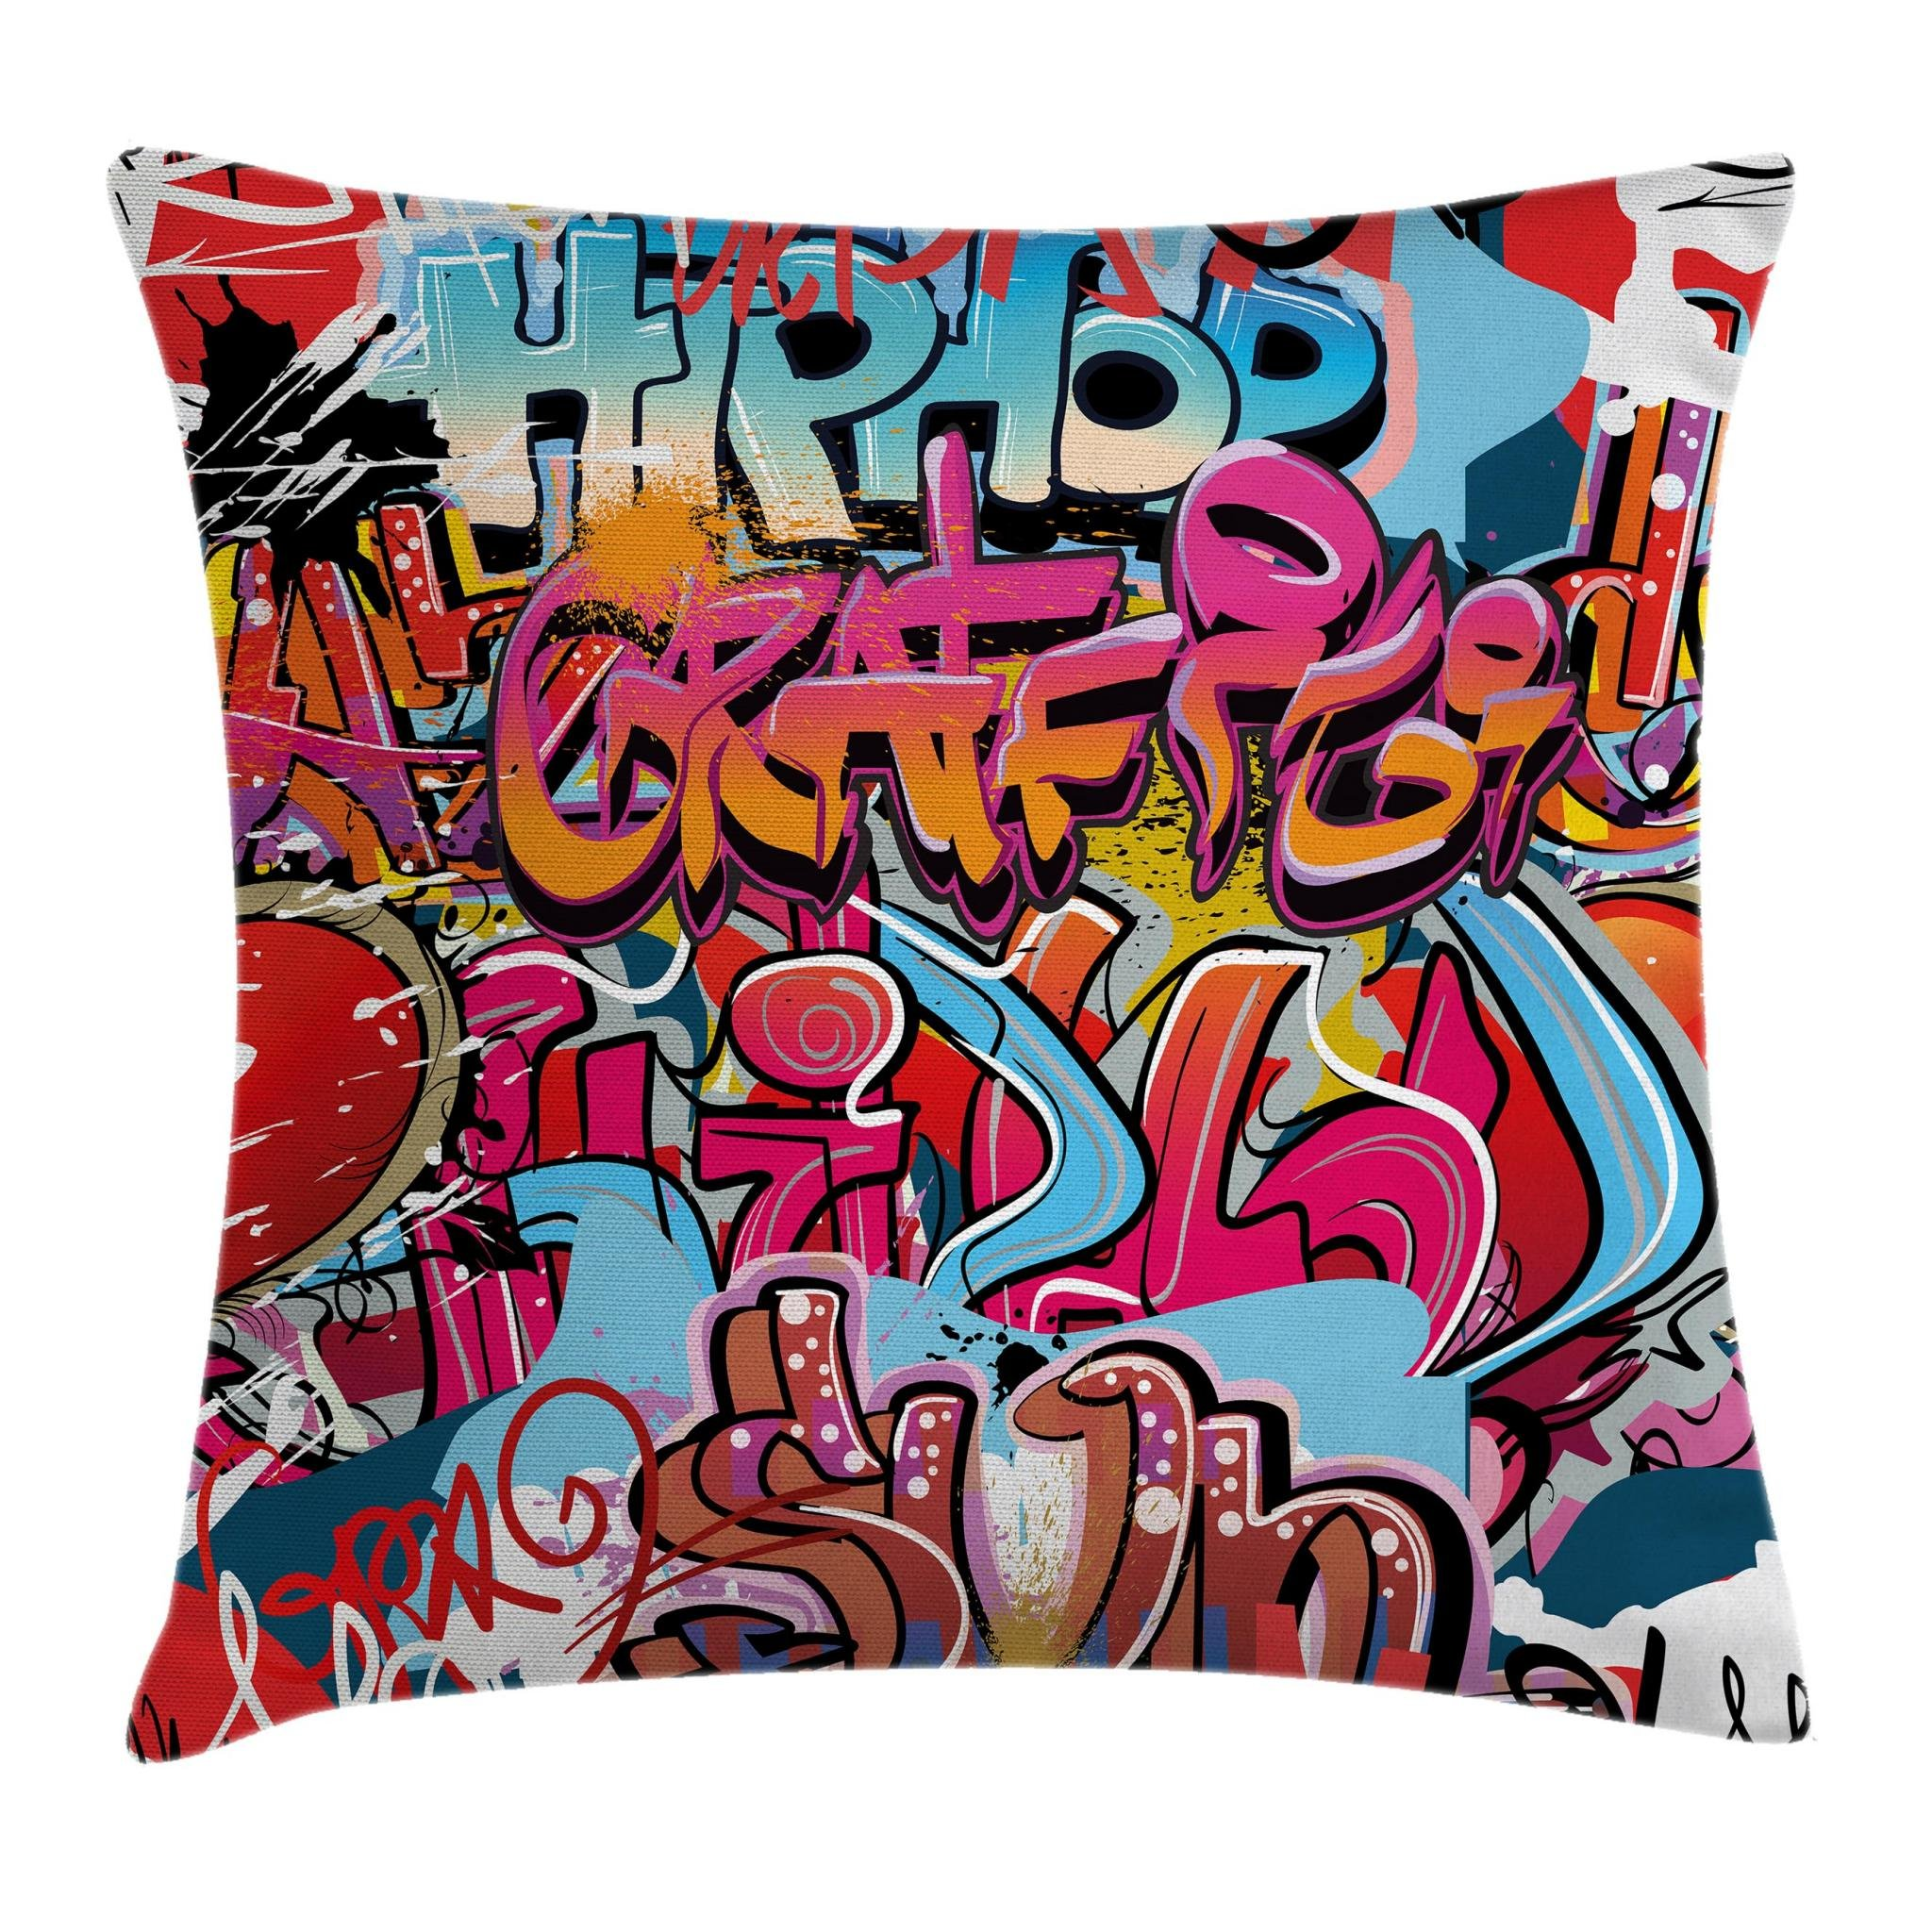 Ambesonne Graphic Decor Throw Pillow Cushion Cover, Hip Hop Street Culture Harlem New York Wall Graffiti Spray Artwork Image, Decorative Square Accent Pillow Case, 16 X 16 Inches, Multicolor